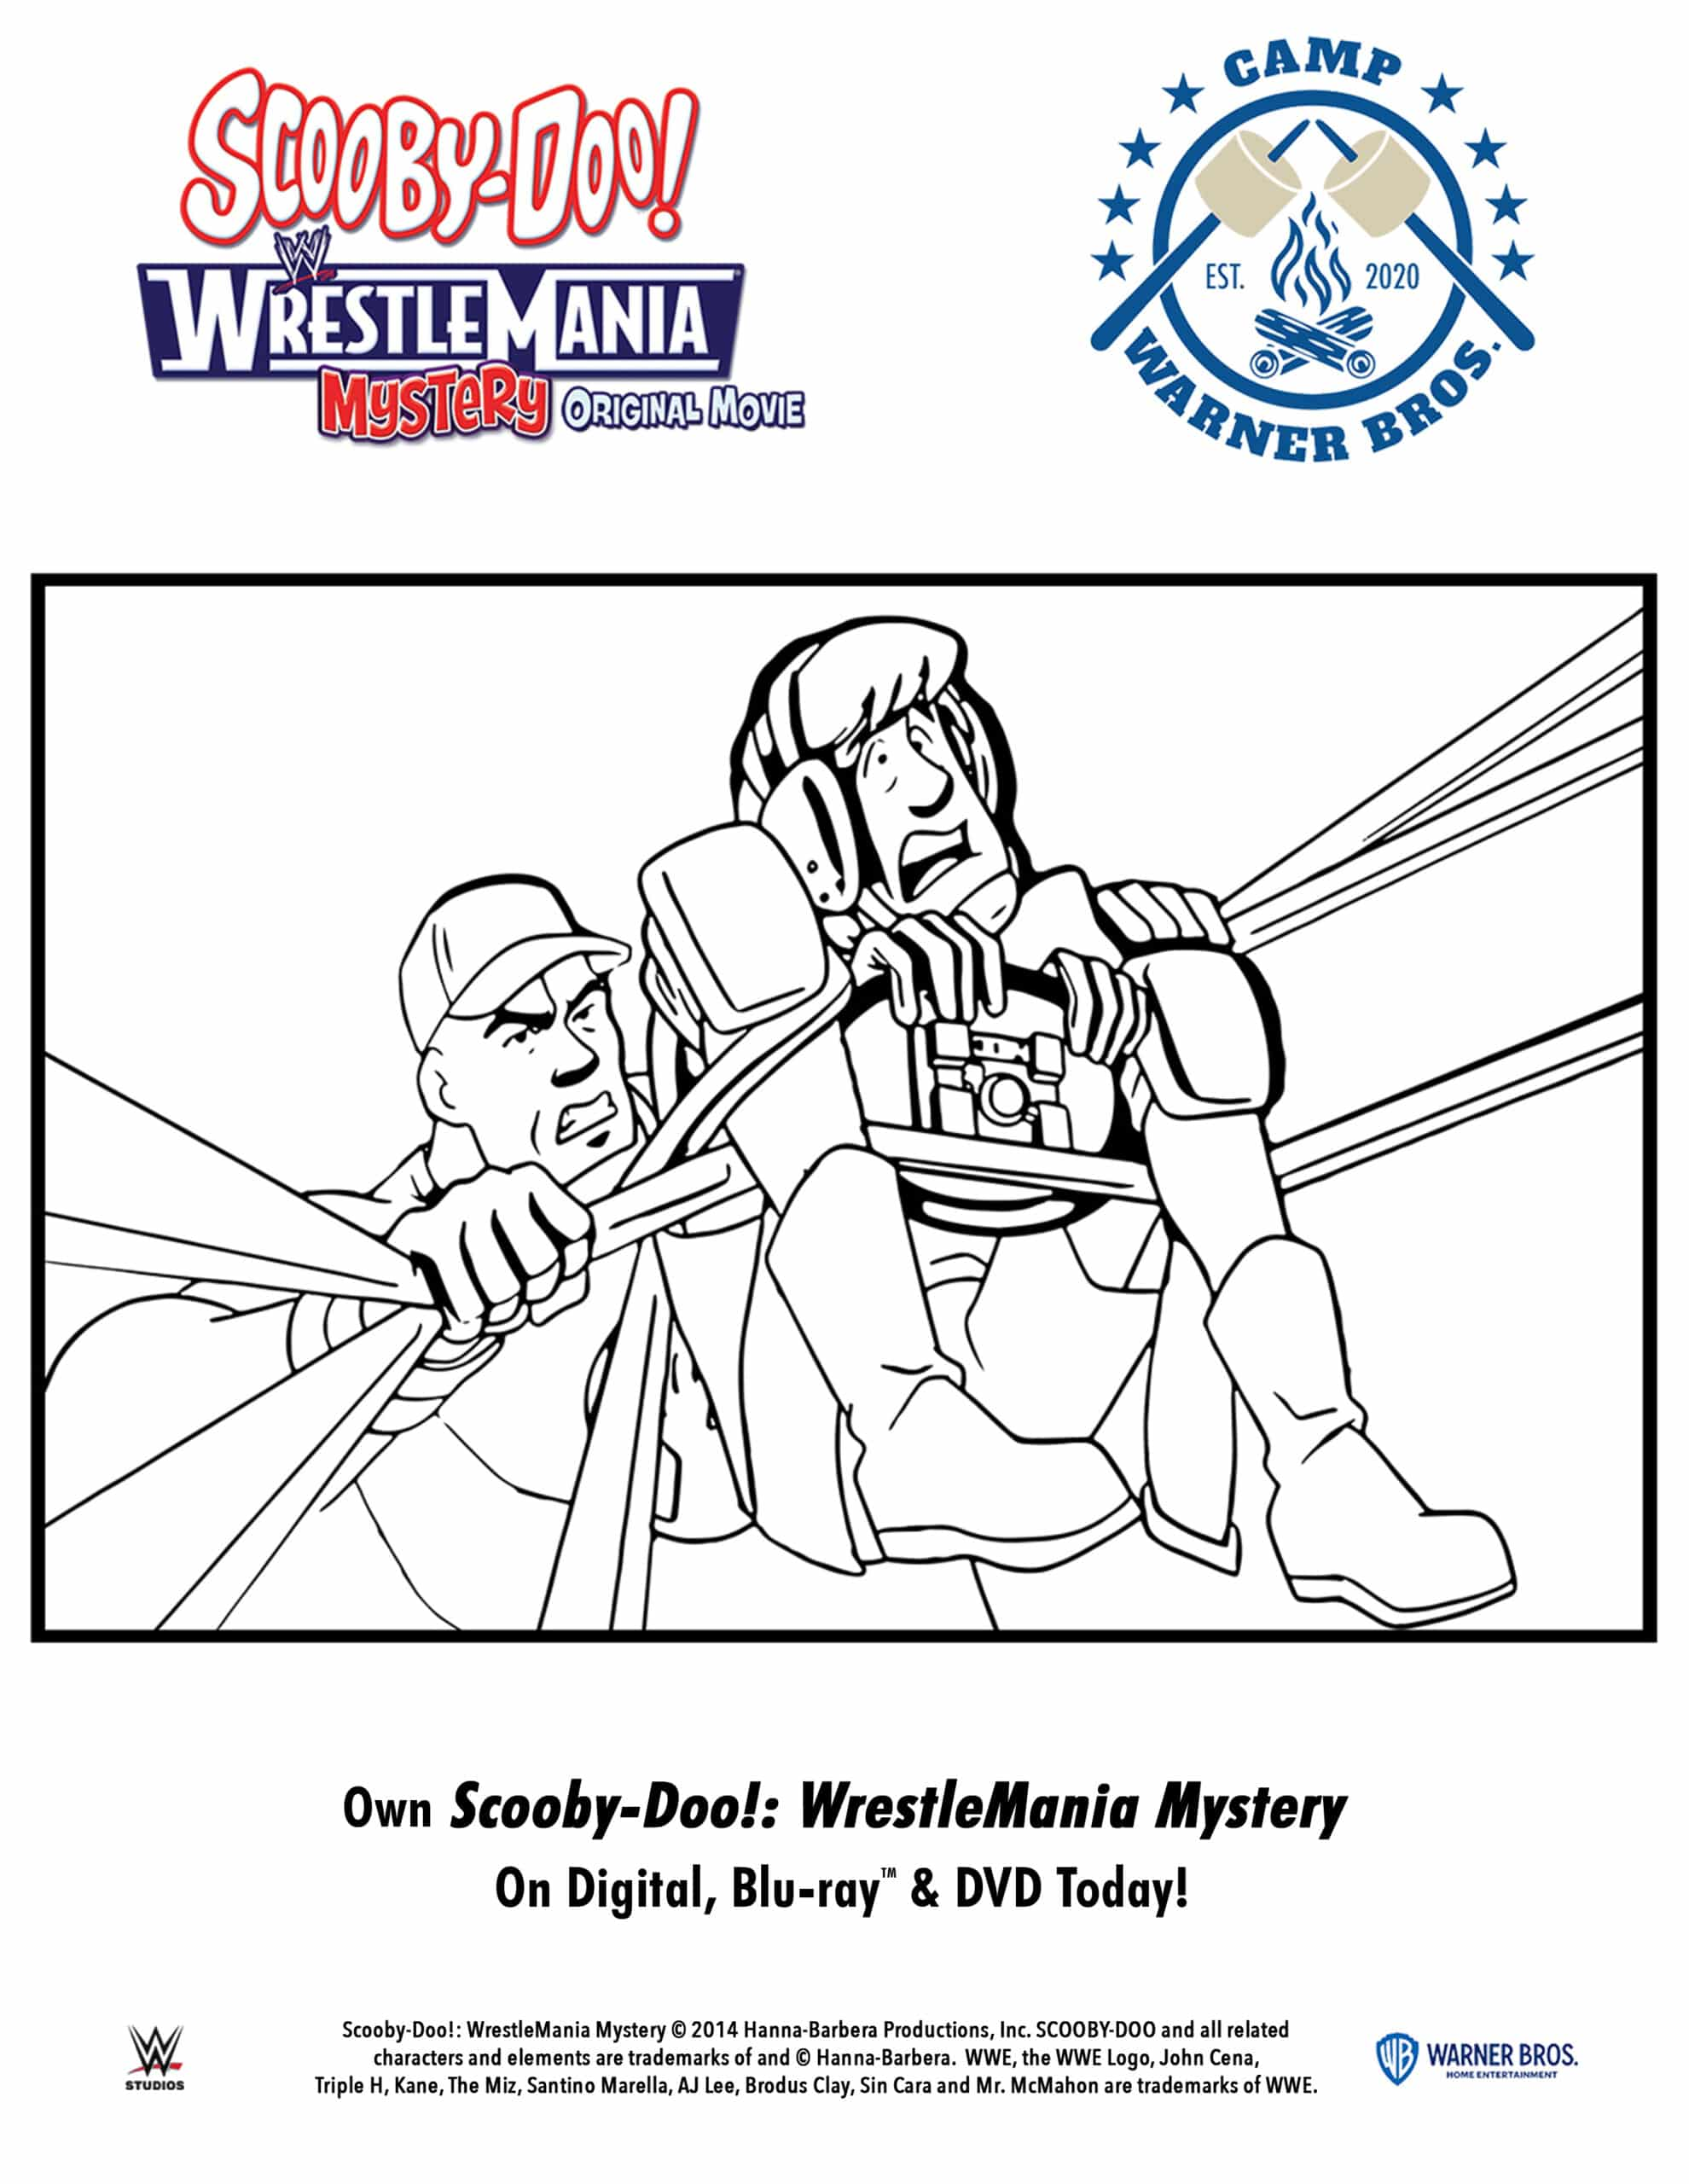 Scooby-Doo!: WrestleMania Mystery Coloring pages. When Shaggy and Scooby win tickets to WrestleMania®, they convince the entire Mystery Inc. gang to travel to WWE City in the Mystery Machine to enjoy the show. Scooby-Doo!: WrestleMania Mysteryis now available to own on Digital, Blu-ray & DVD